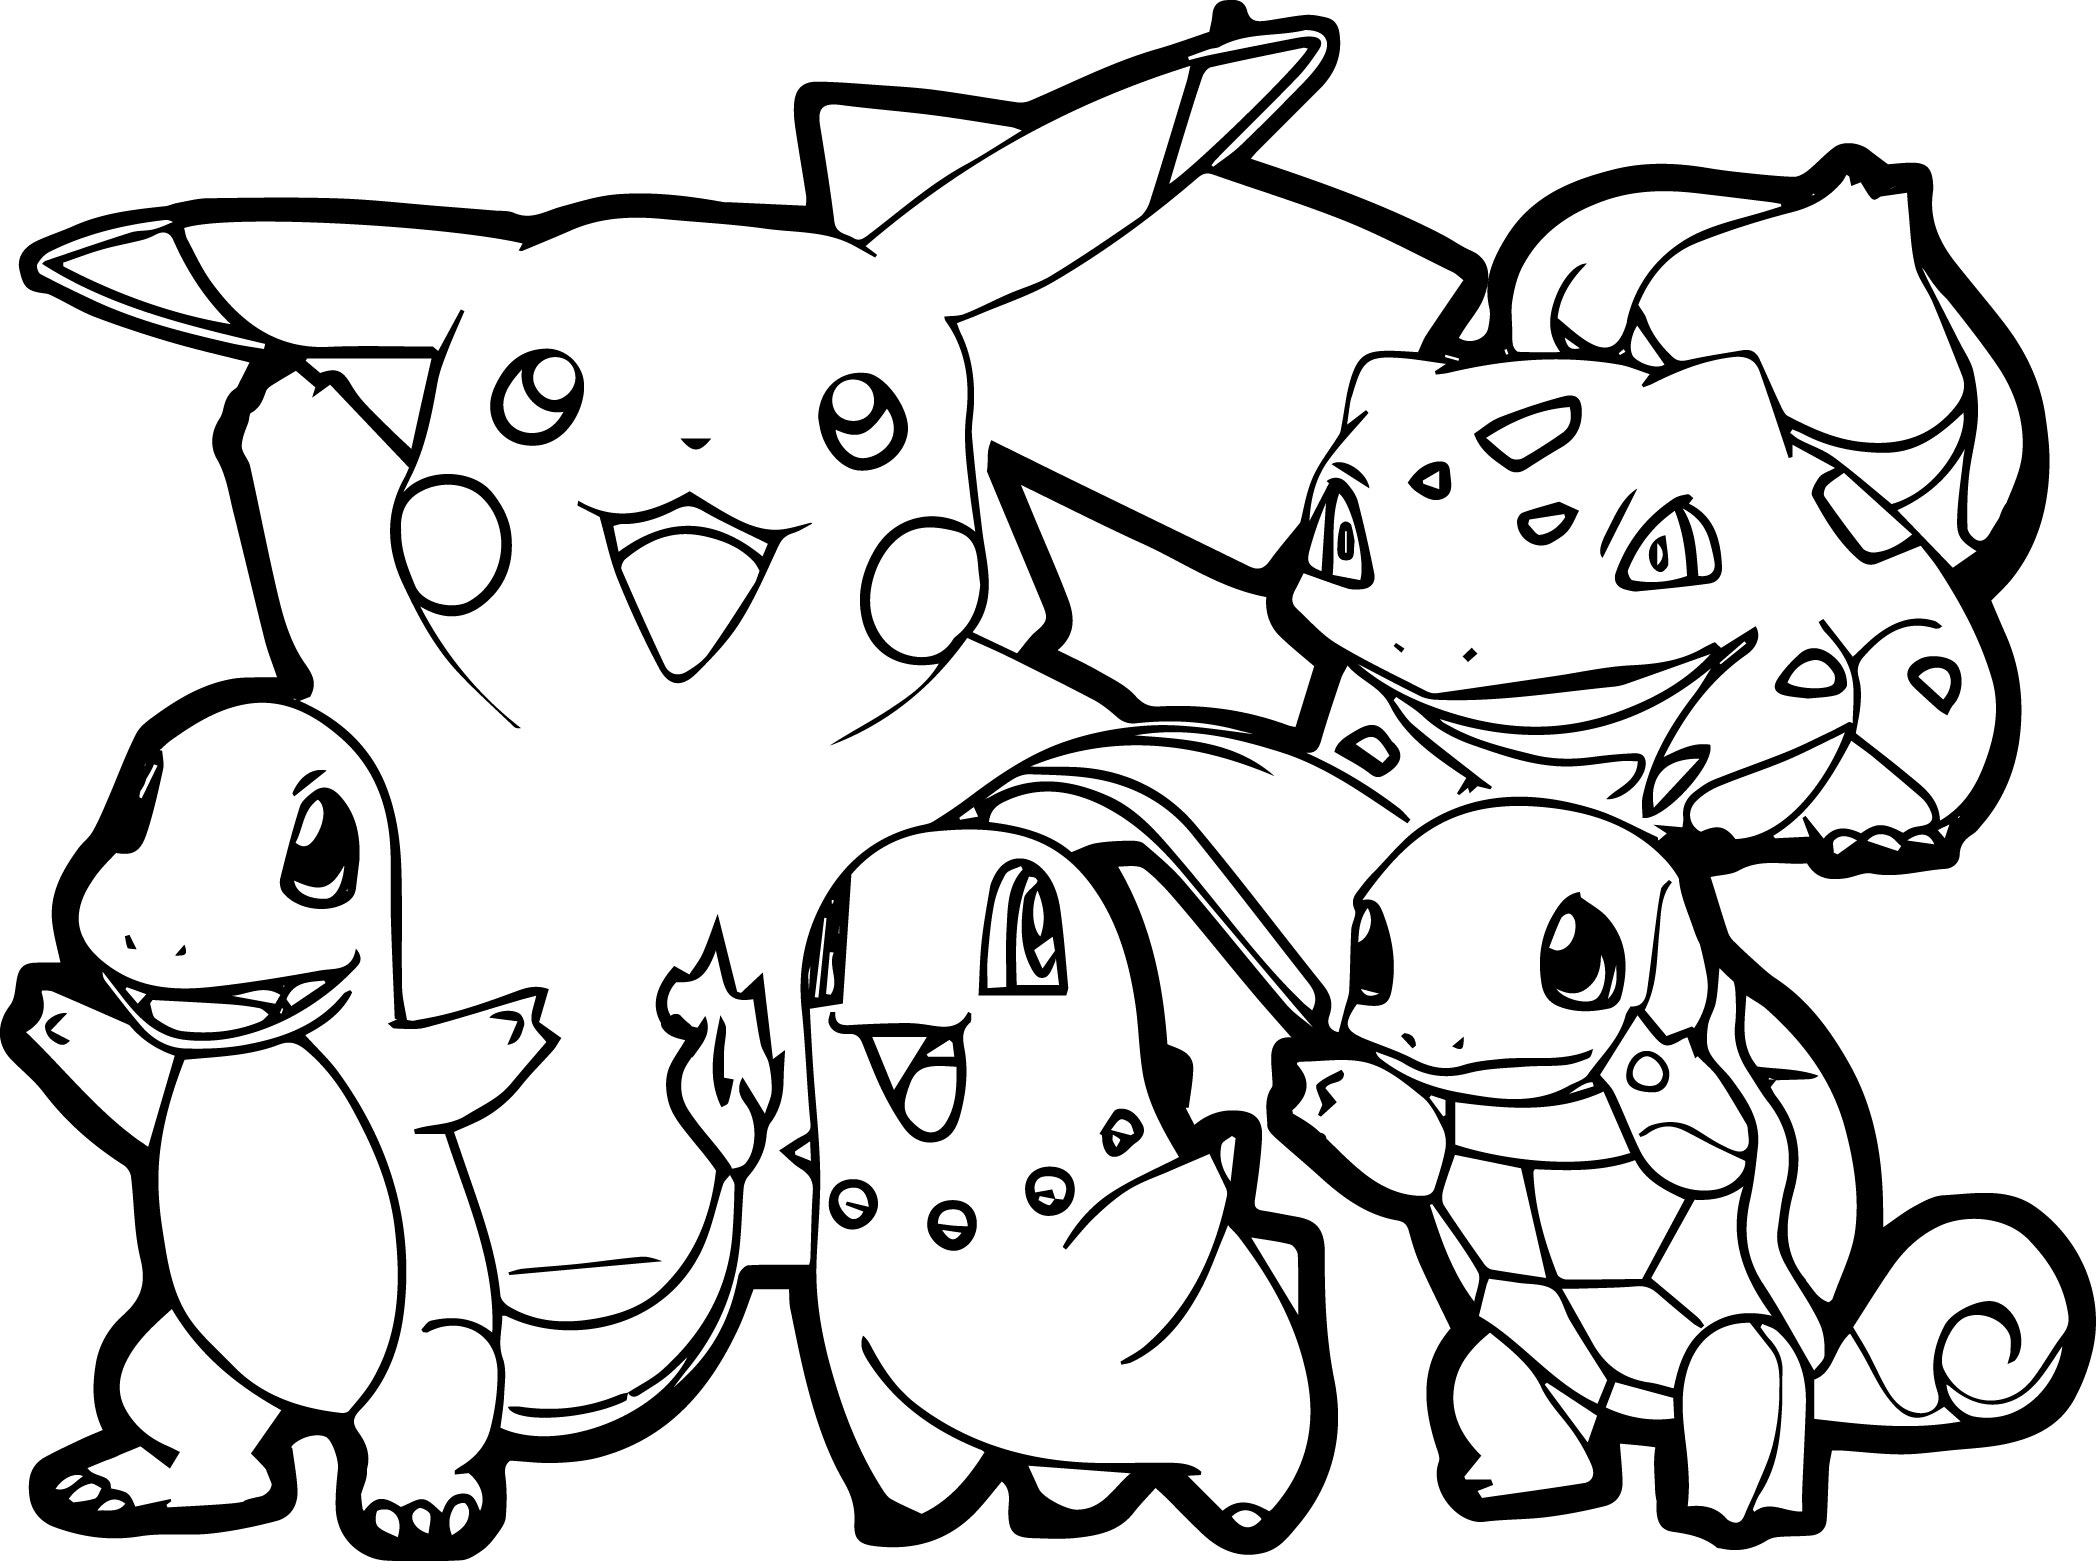 2096x1561 Coloring Pages Free Printable Inspirational Pokemon Coloring